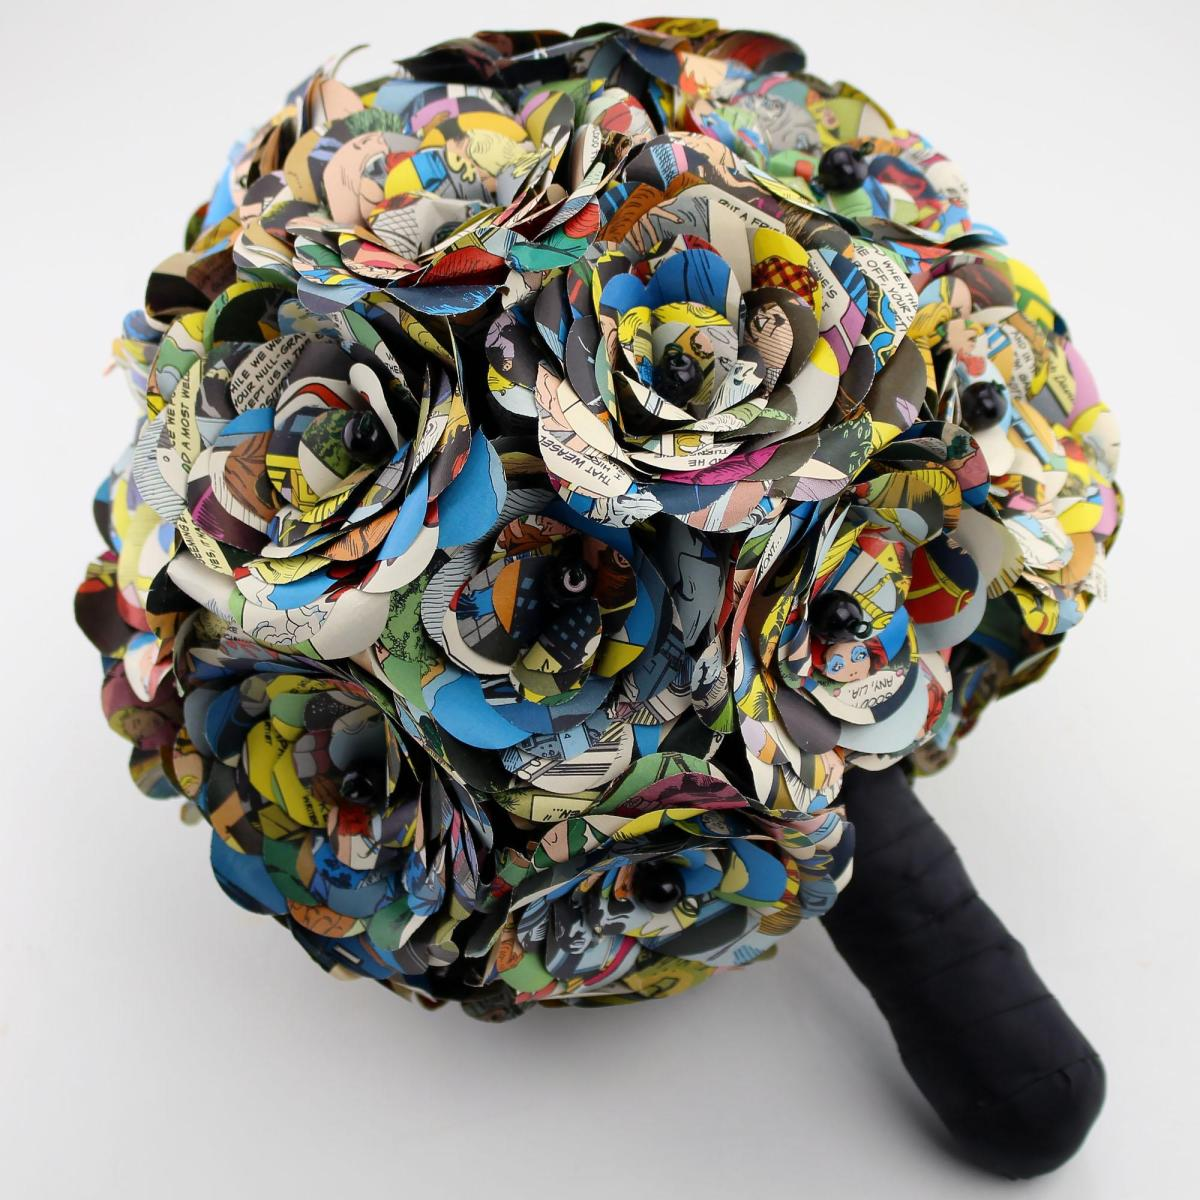 Comic Book Bouquets And Boutonnieres / Boing Boing